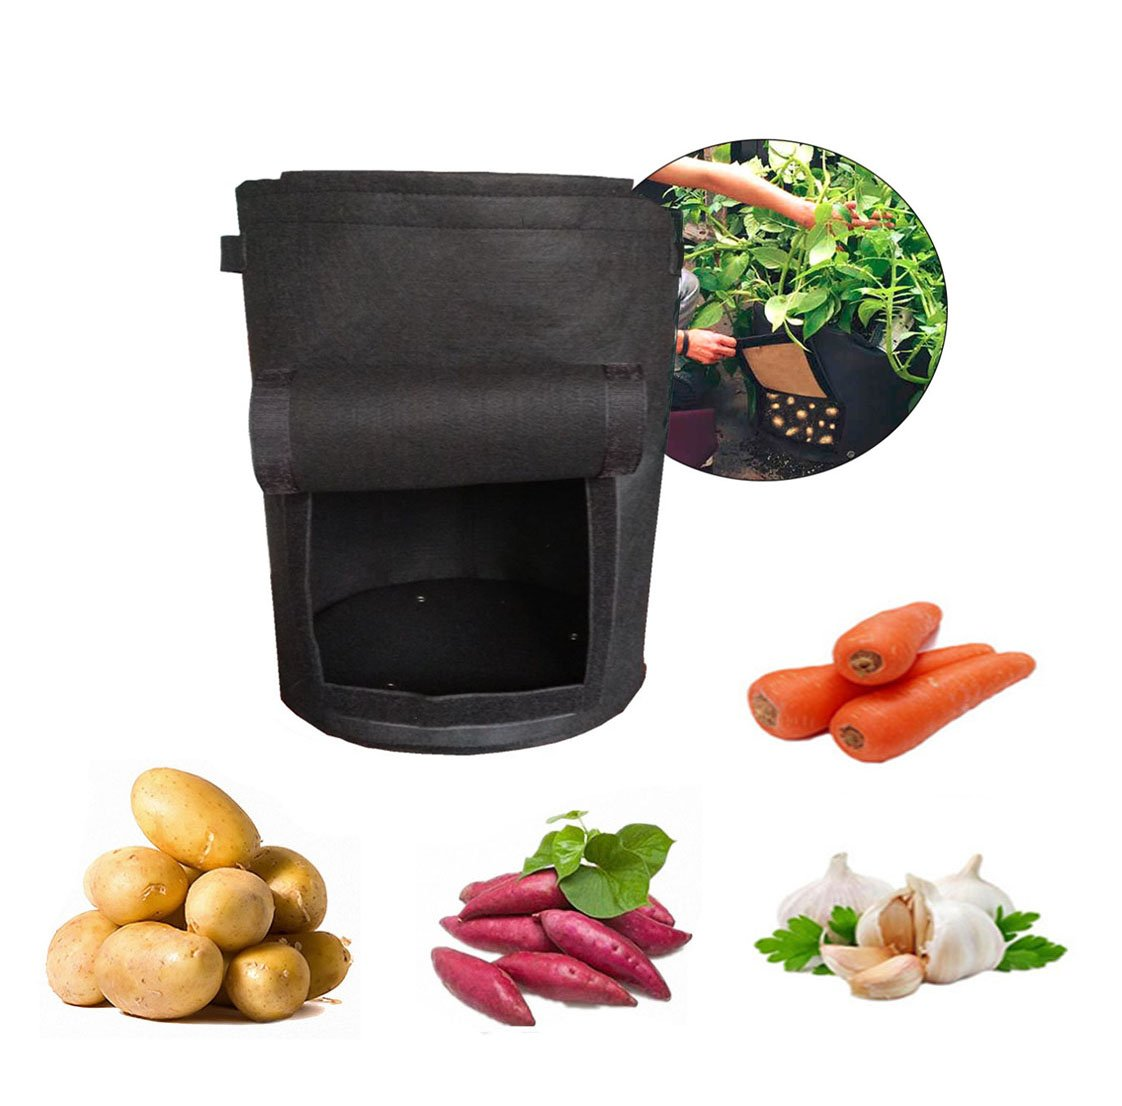 11'' x 11'' Potato Grow Bag 2-Pack Garden Vegetables Planter Bags with Flap and Handles Heavy Duty Suitable for Potato, Carrot, Tomato, Onion and More